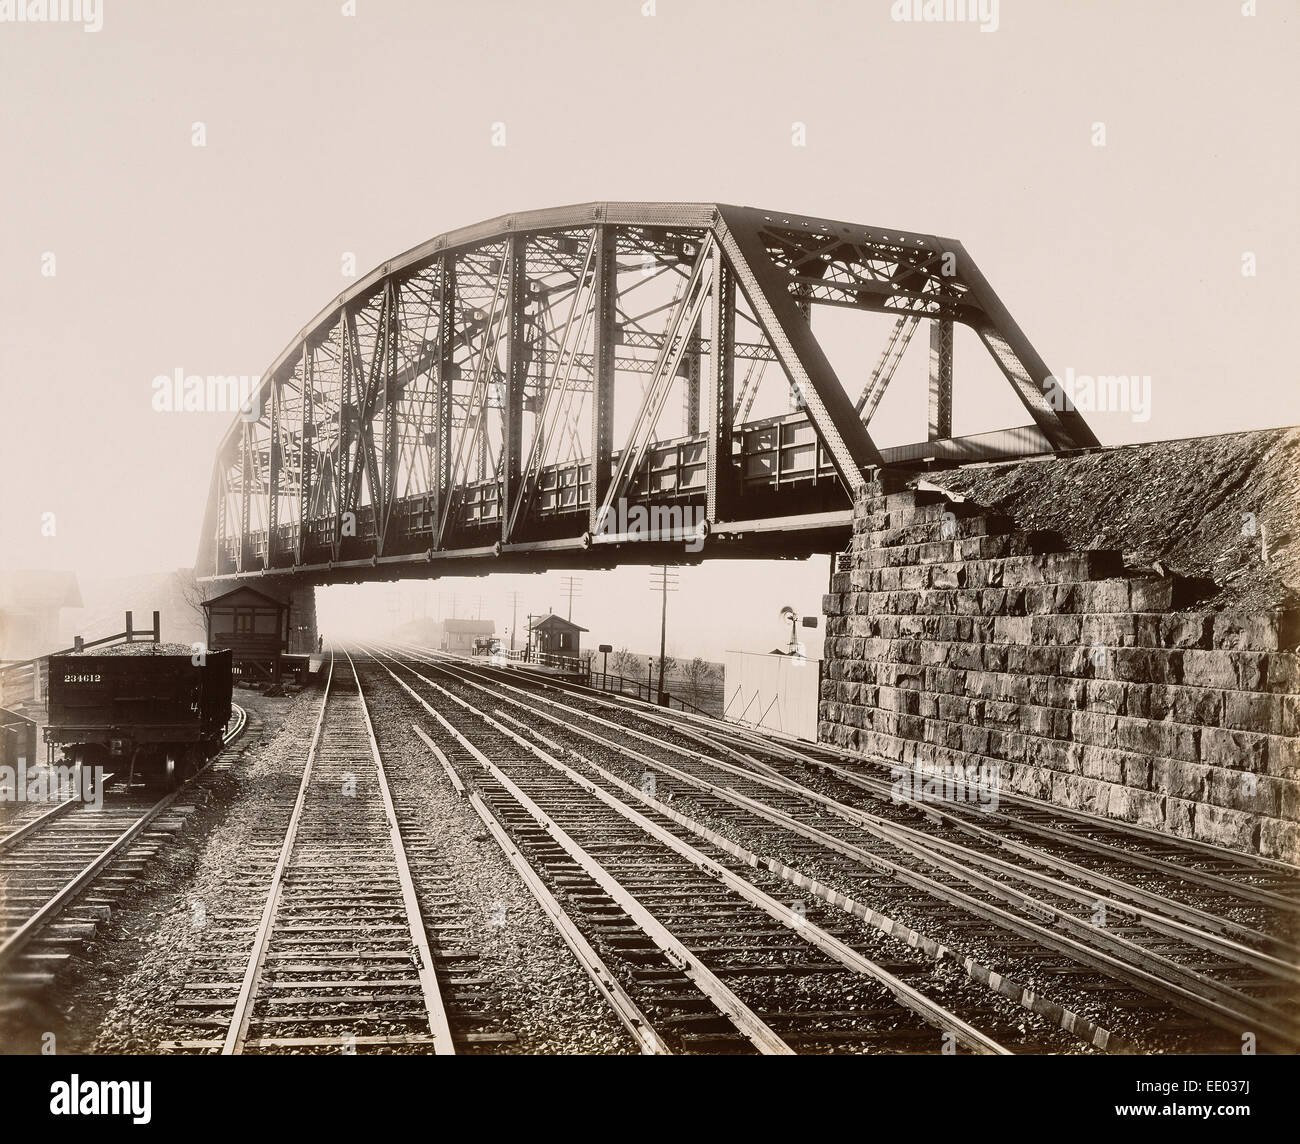 Low grade Crossing at Whitford.; William H. Rau, American, 1855 - 1920; Whitford, Pennsylvania, United States, North - Stock Image